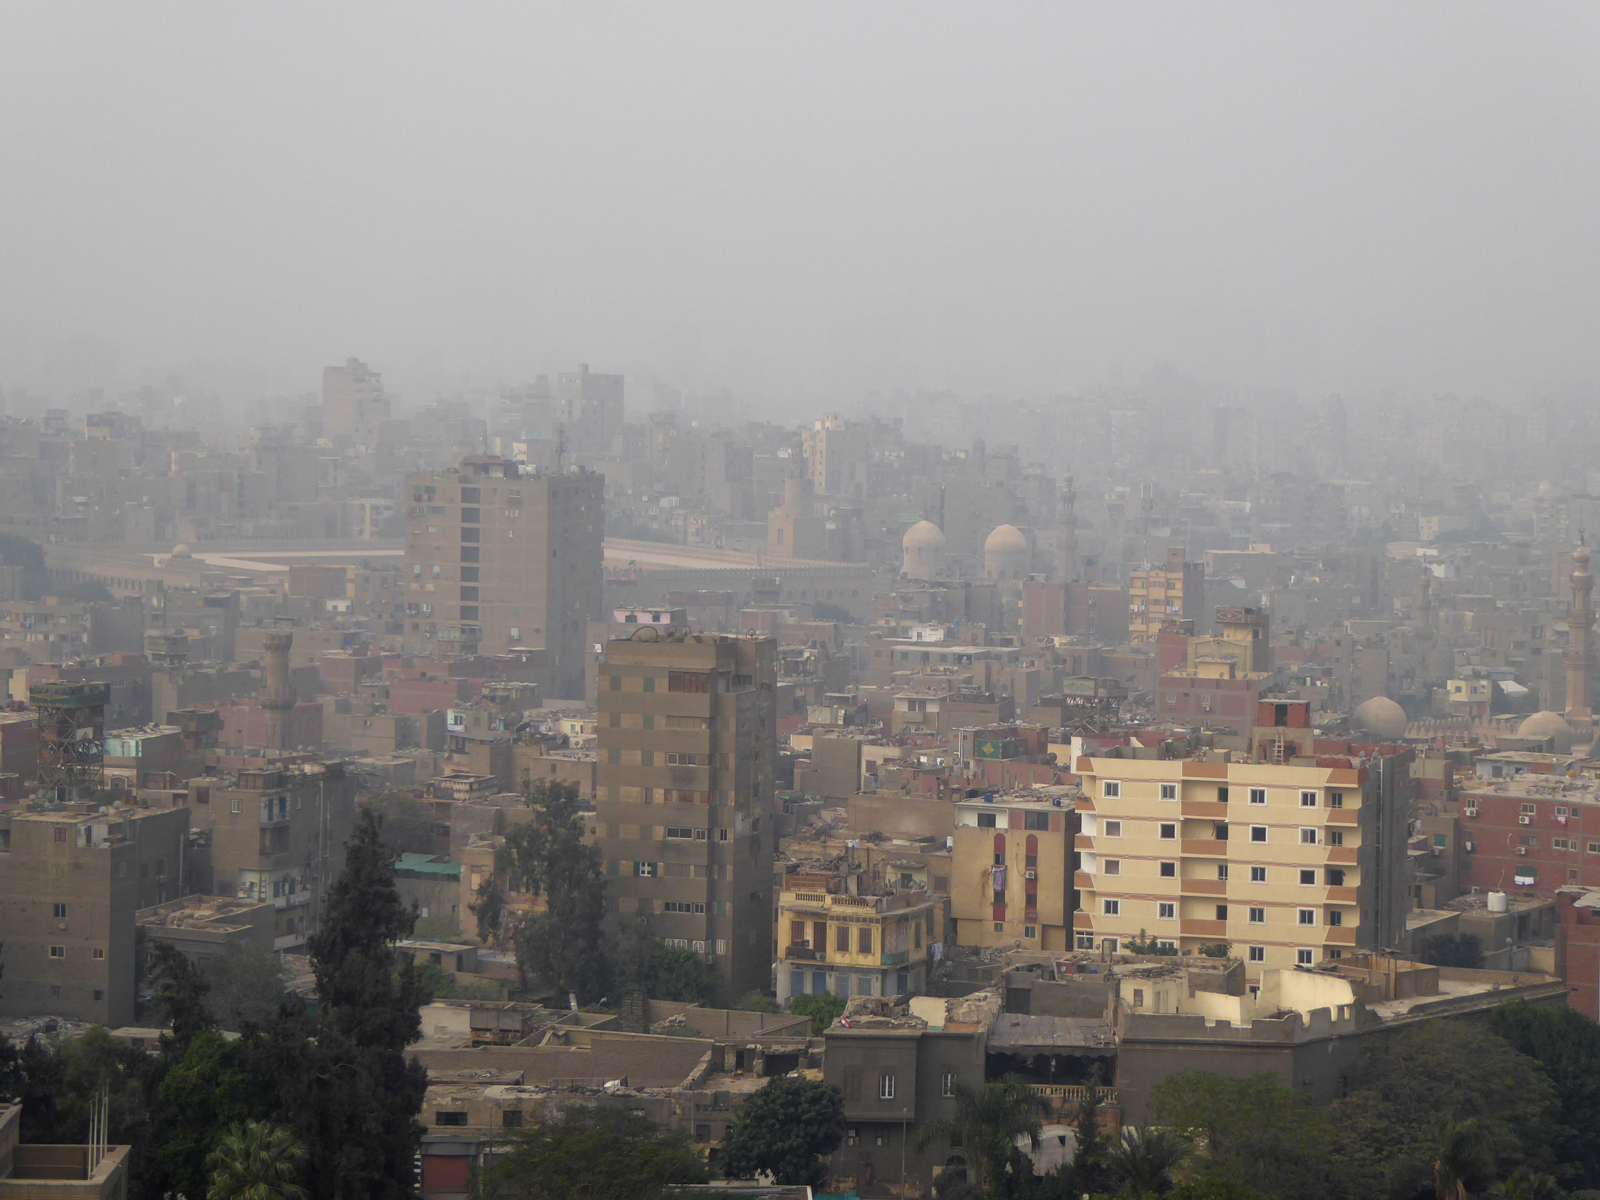 Le Caire suffoque sous la pollution.